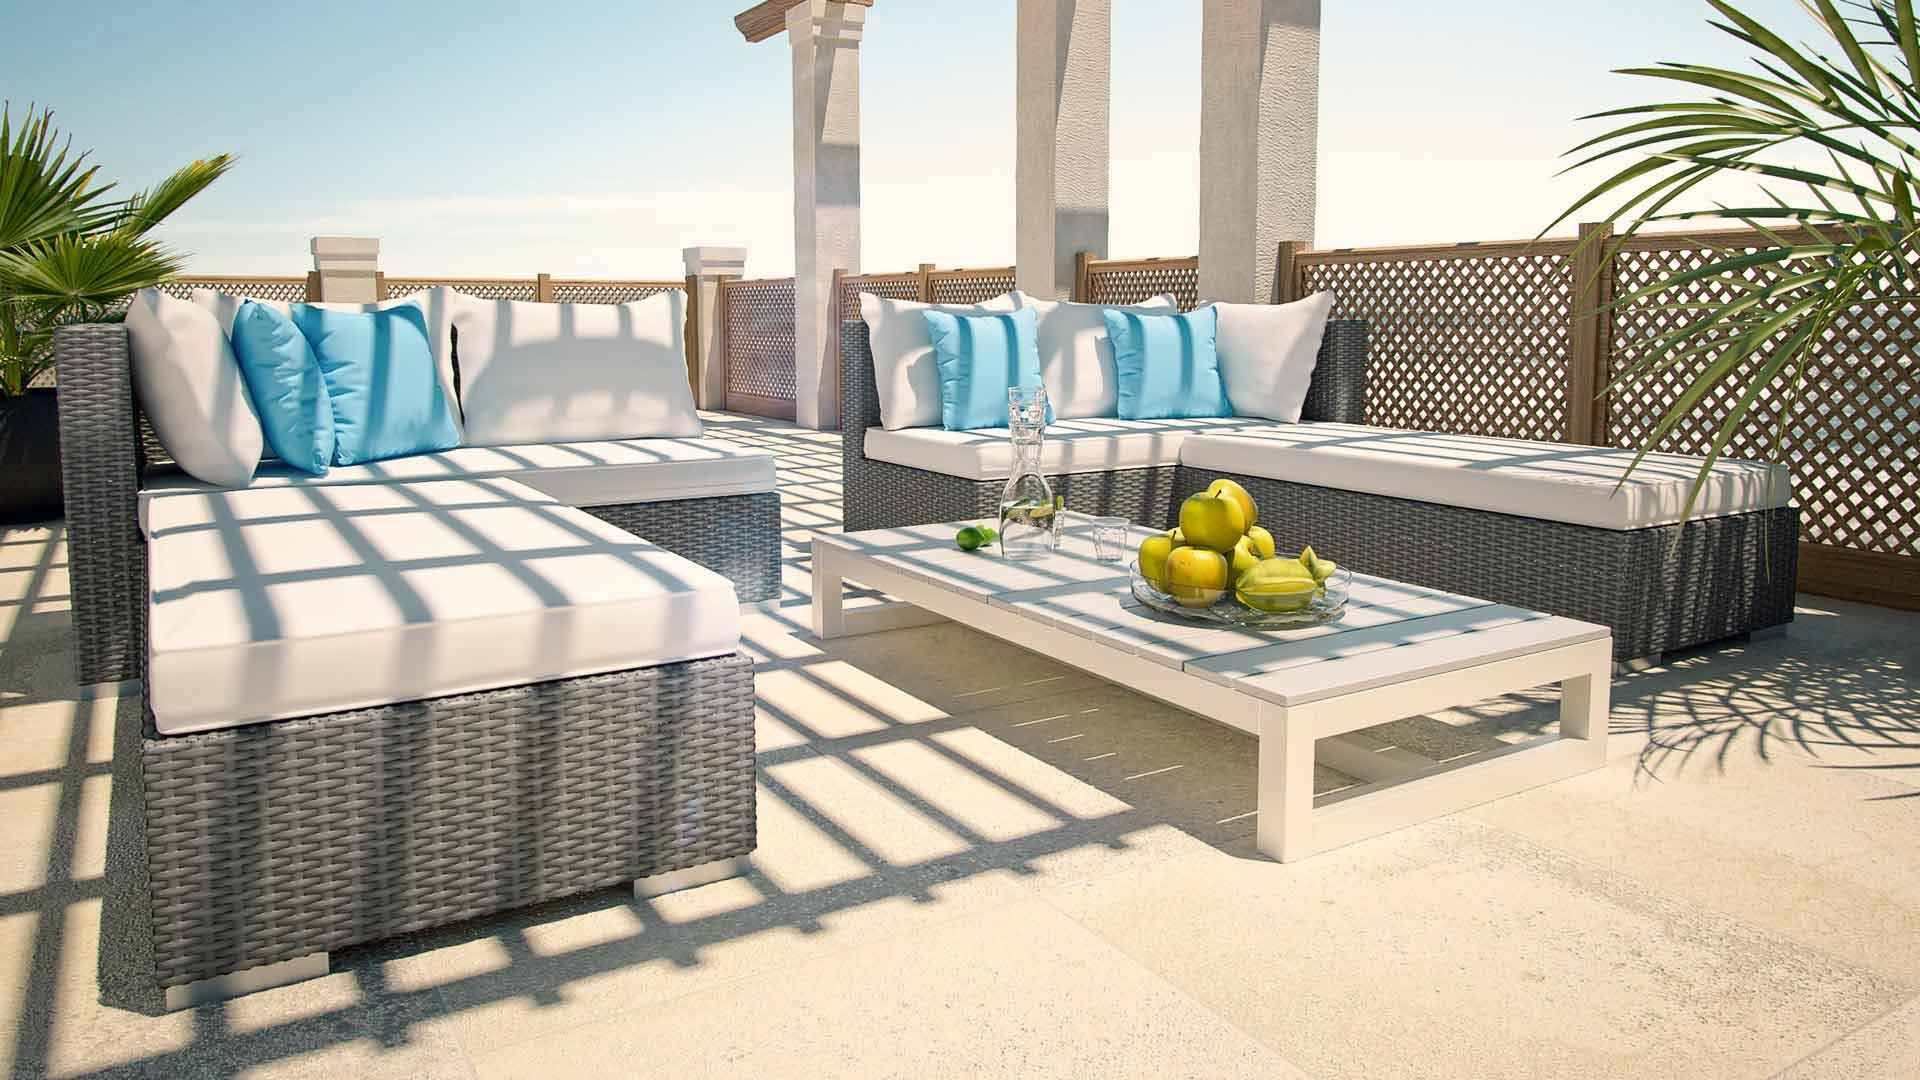 Rattan Couch Safira | Outdoor Furniture Sets, Rattan ... serapportantà Artelia Salon De Jardin